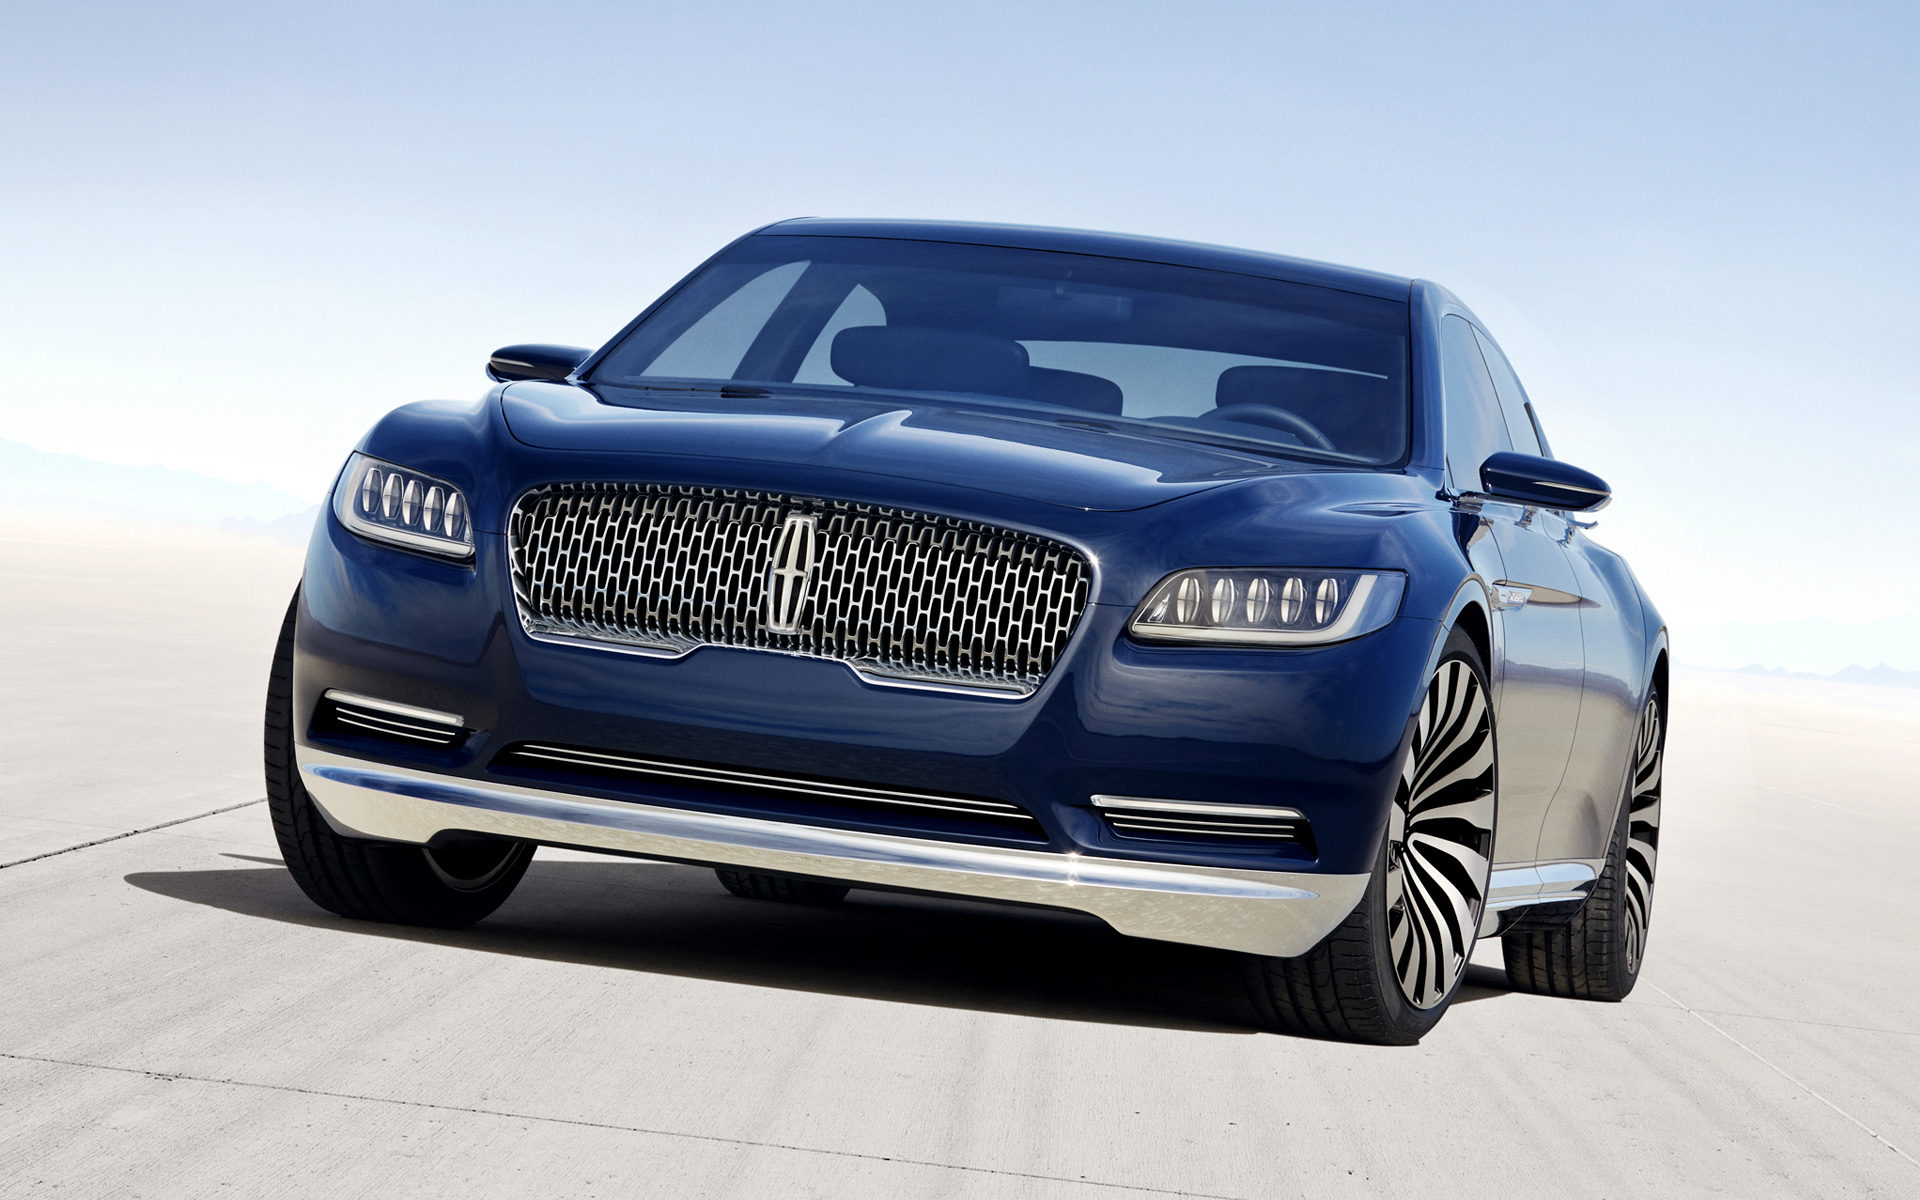 2016 Lincoln Continental Concept >> 2016 Lincoln Continental Concept Wallpaper | HD Car Wallpapers | ID #6029